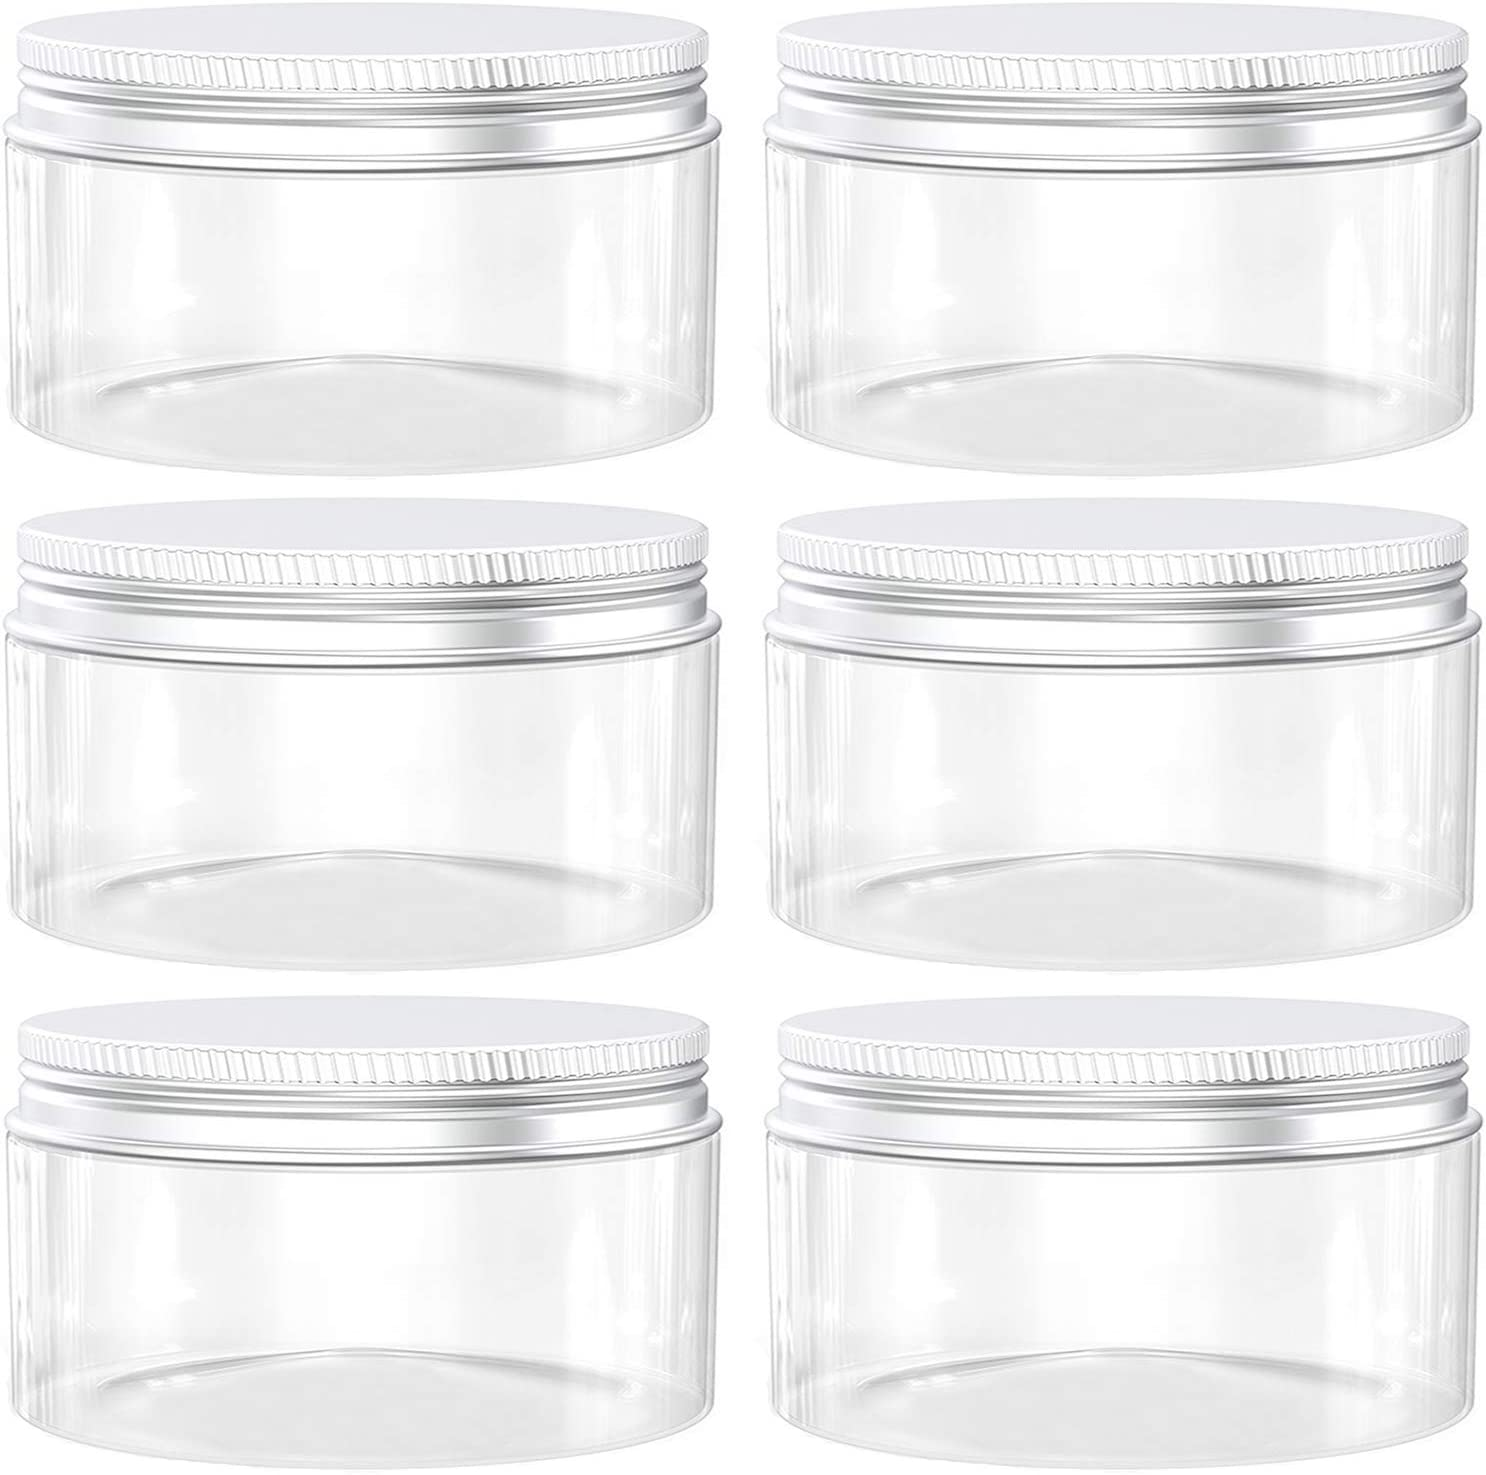 Axe Sickle 10 Ounce Plastic Jars Clear Plastic Mason Jars Storage Containers Wide Mouth With Lids For Kitchen & Household Storage Airtight Container 6 PCS